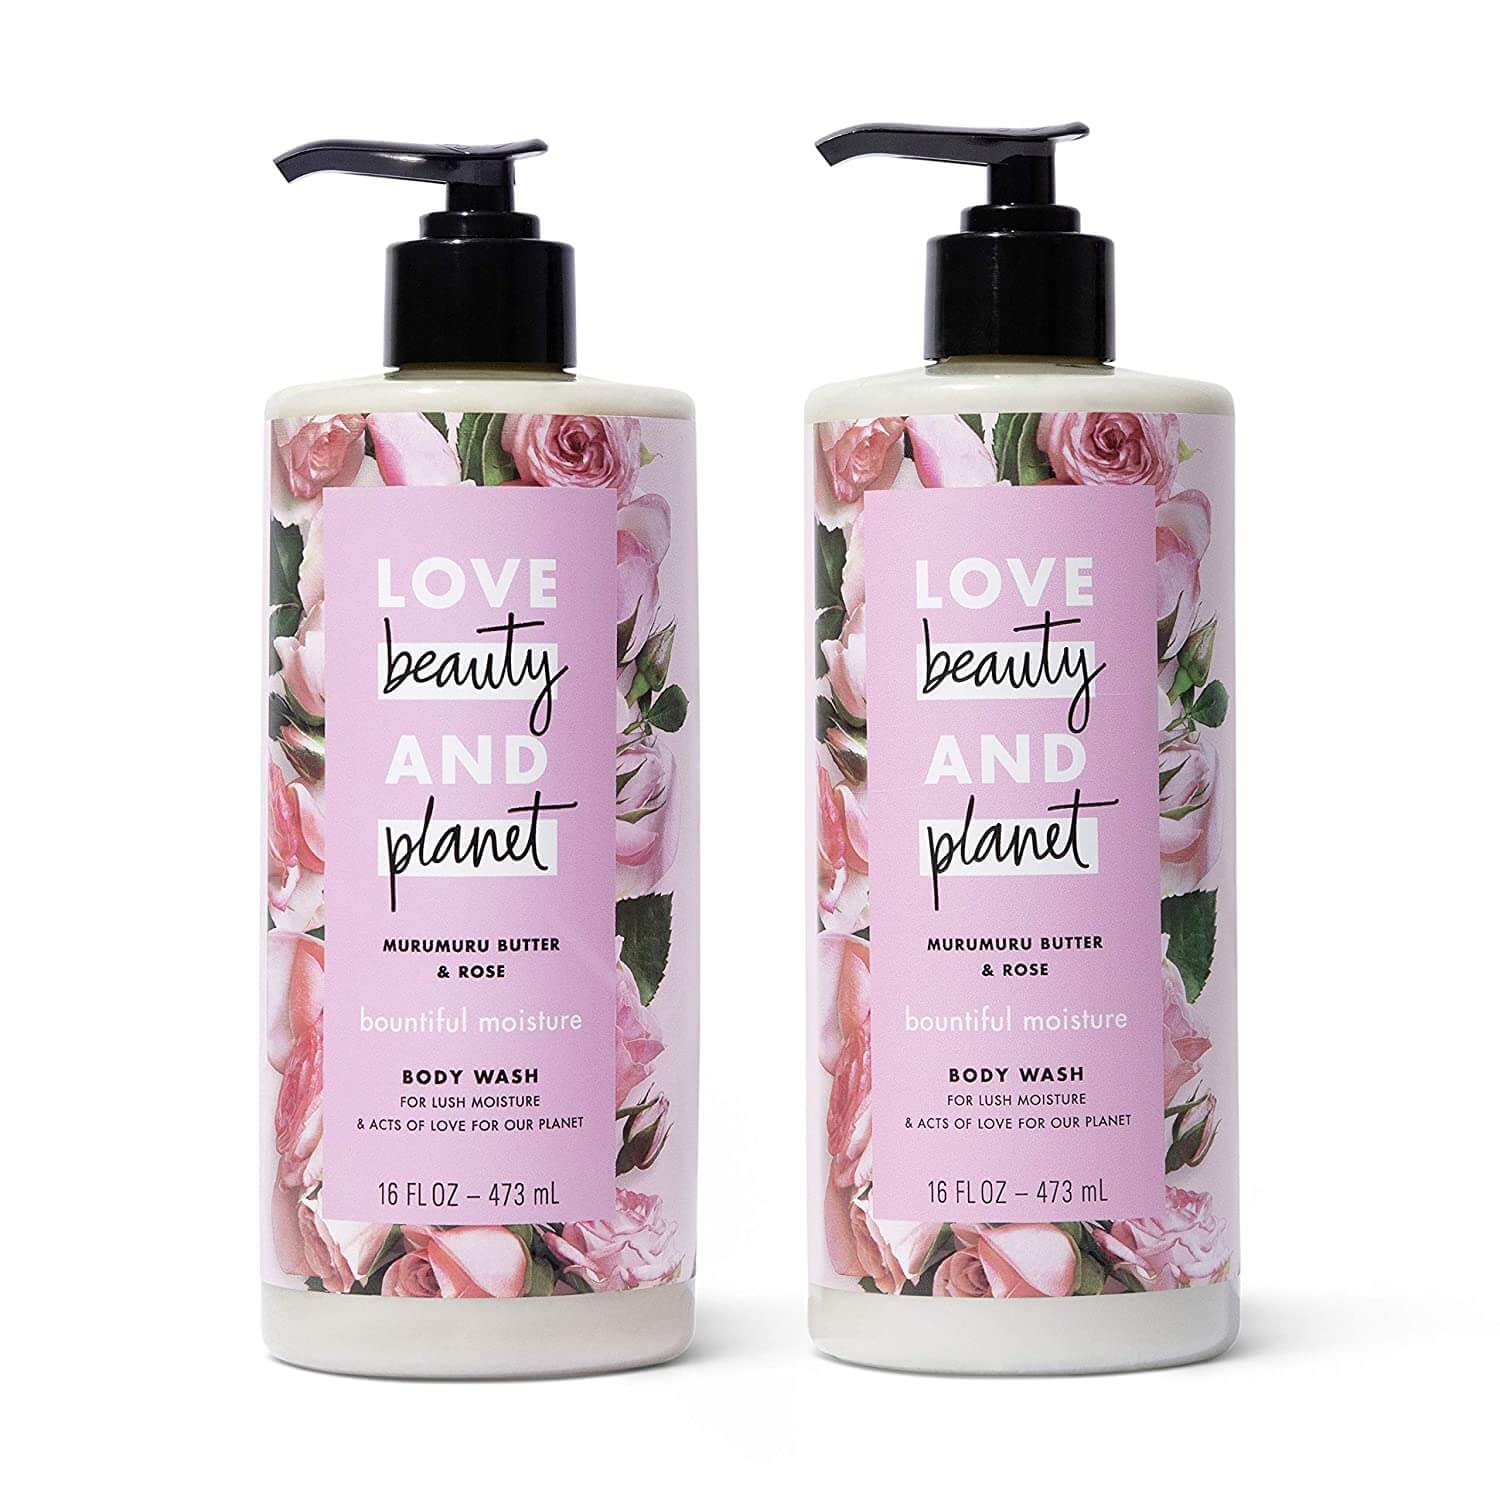 Pretty body lotion as an addition for self care strategies